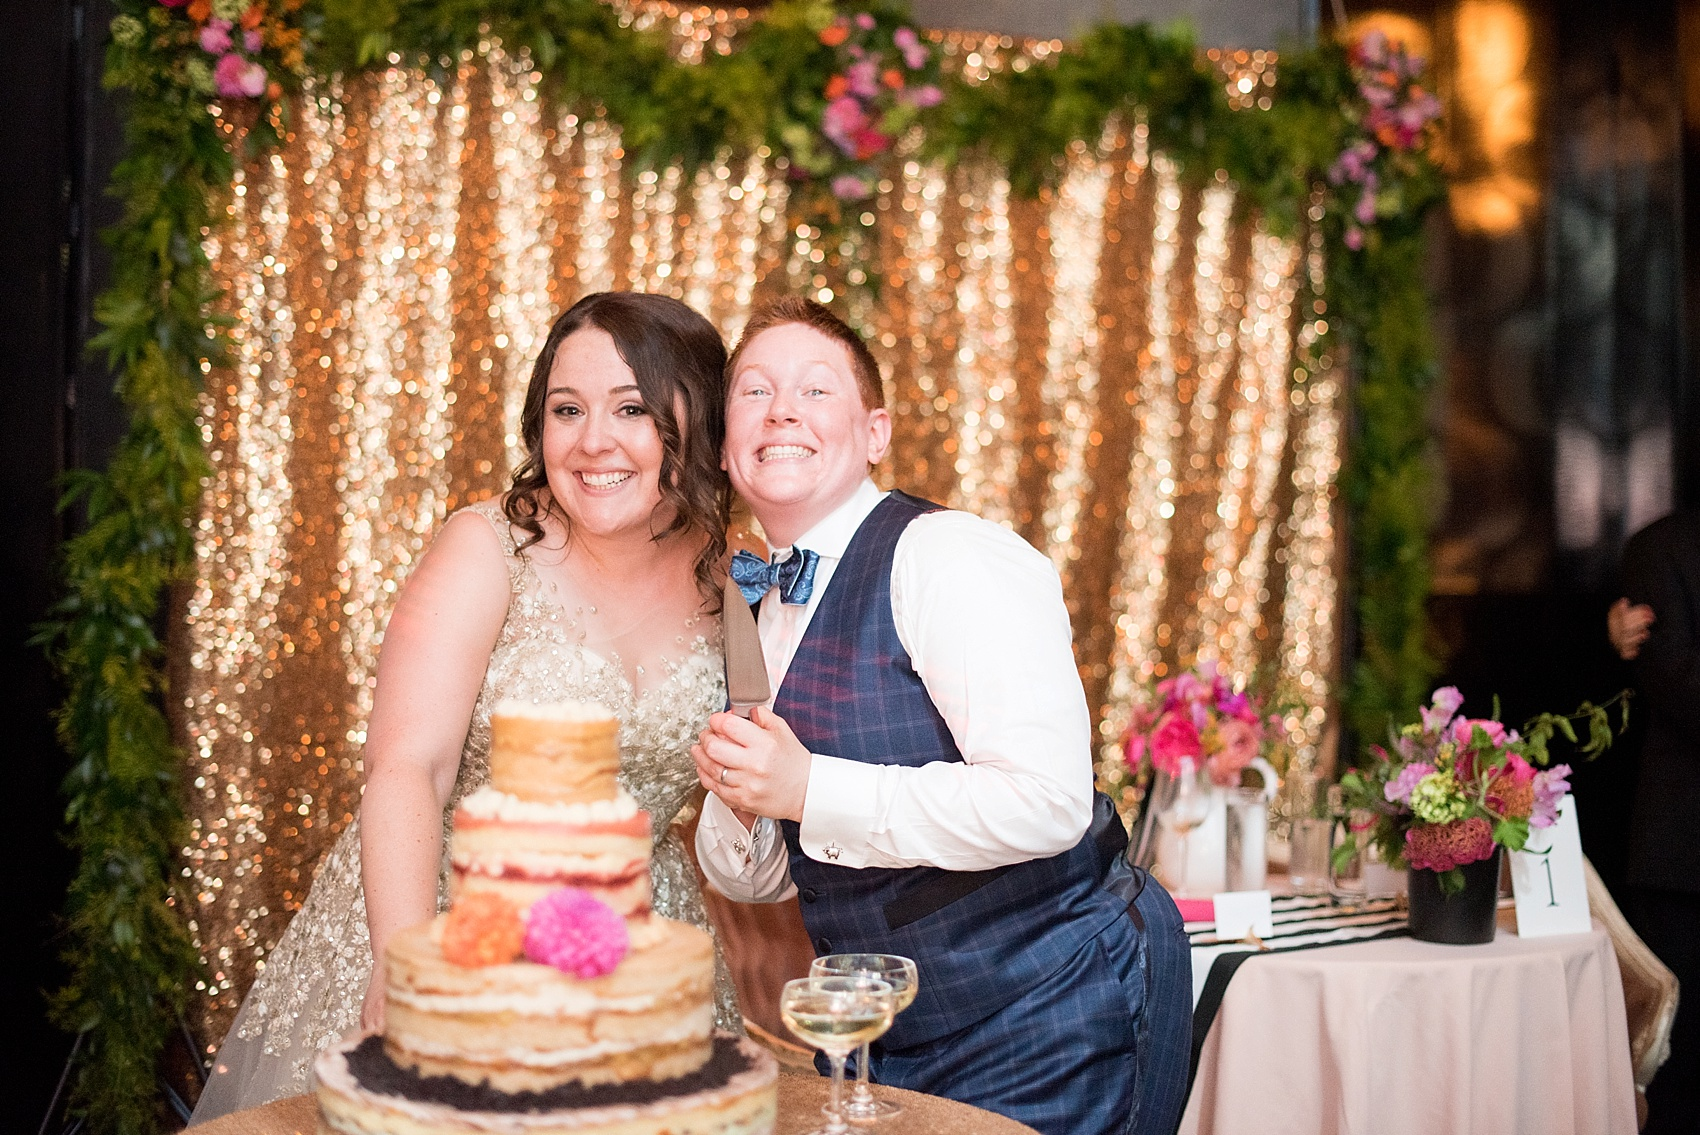 501 Union lesbian wedding in Brooklyn, NY. Photos by Mikkel Paige Photography, planning by Ashley M Chamblin. Exposed Cake by Momofuku.